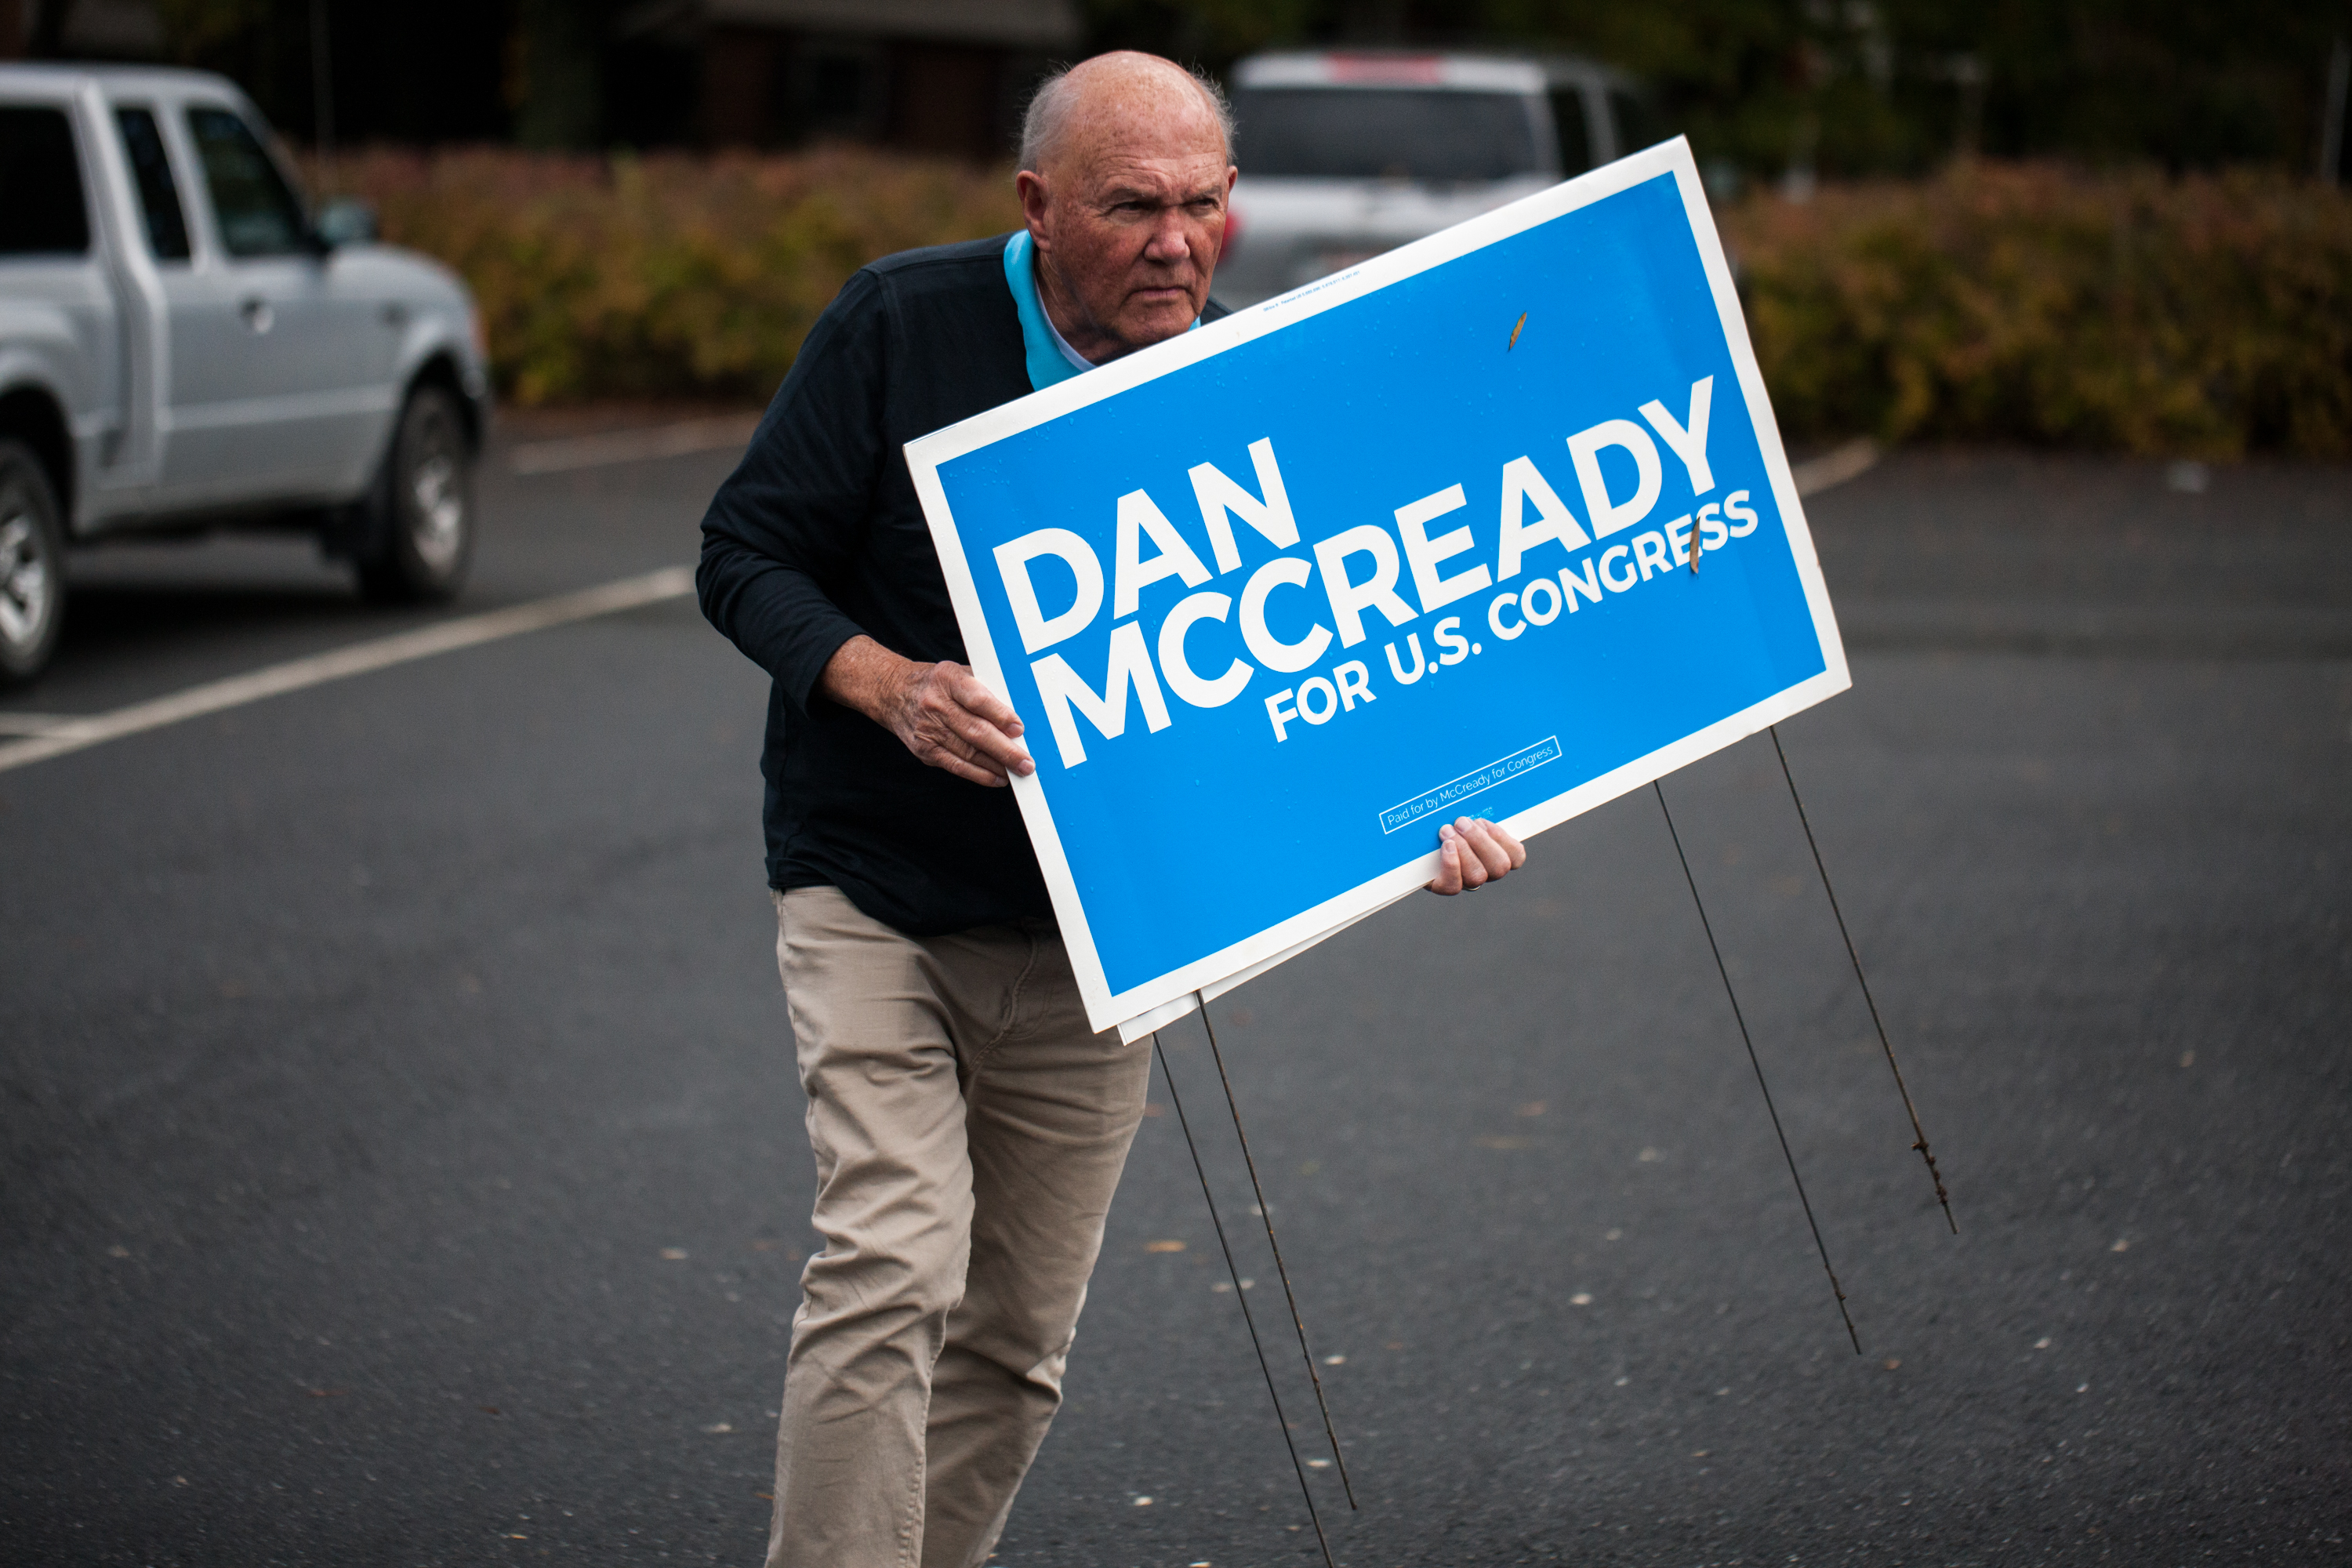 A campaign volunteer for Democratic US House candidate, Dan McCready, carries signs on November 6, 2018 in Charlotte, North Carolina. (LOGAN CYRUS/AFP/Getty Images)